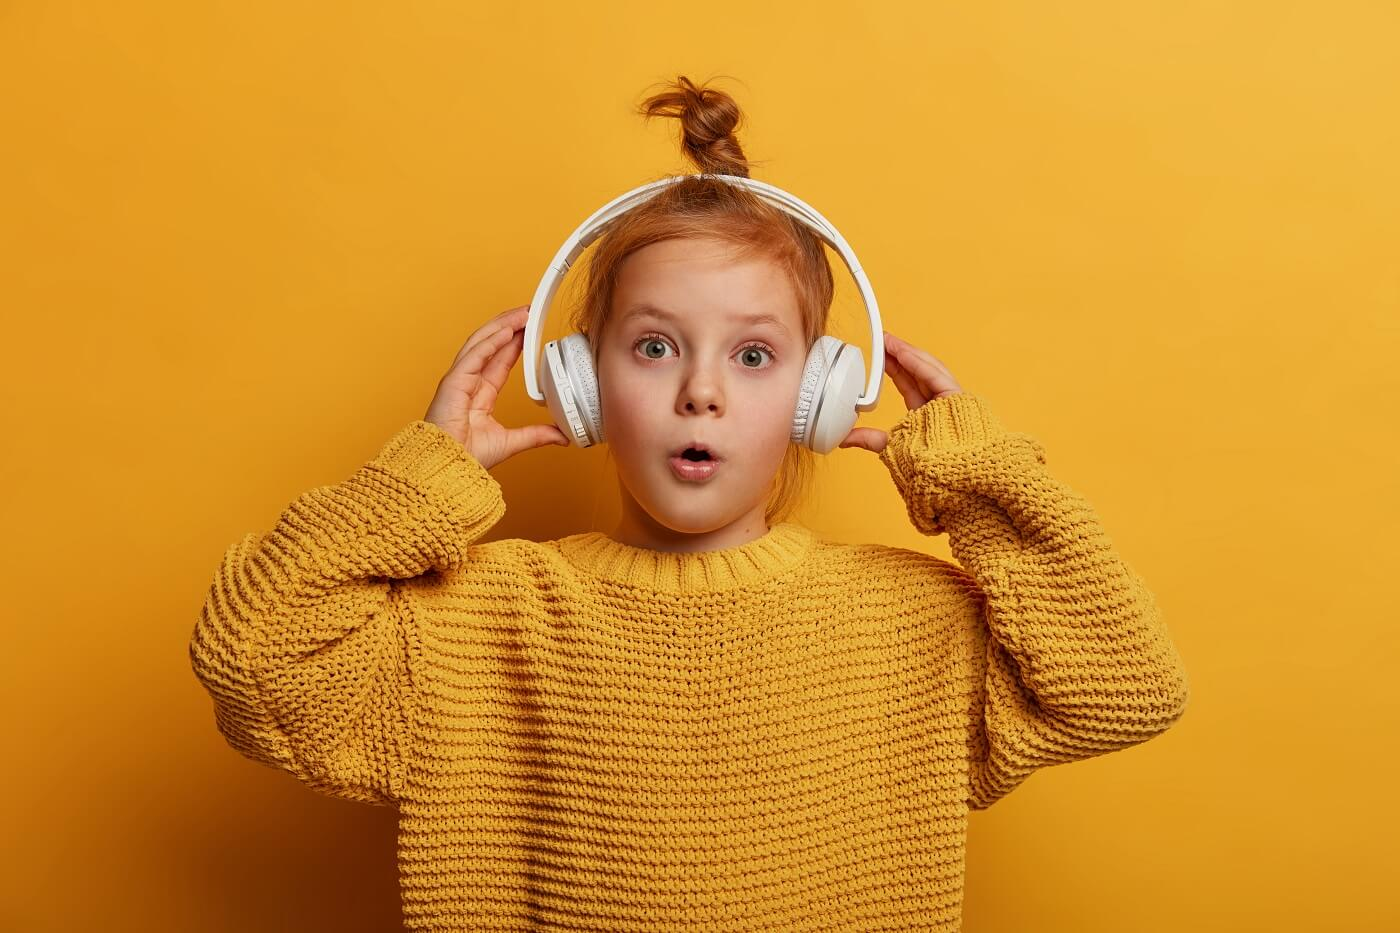 music surprise expression